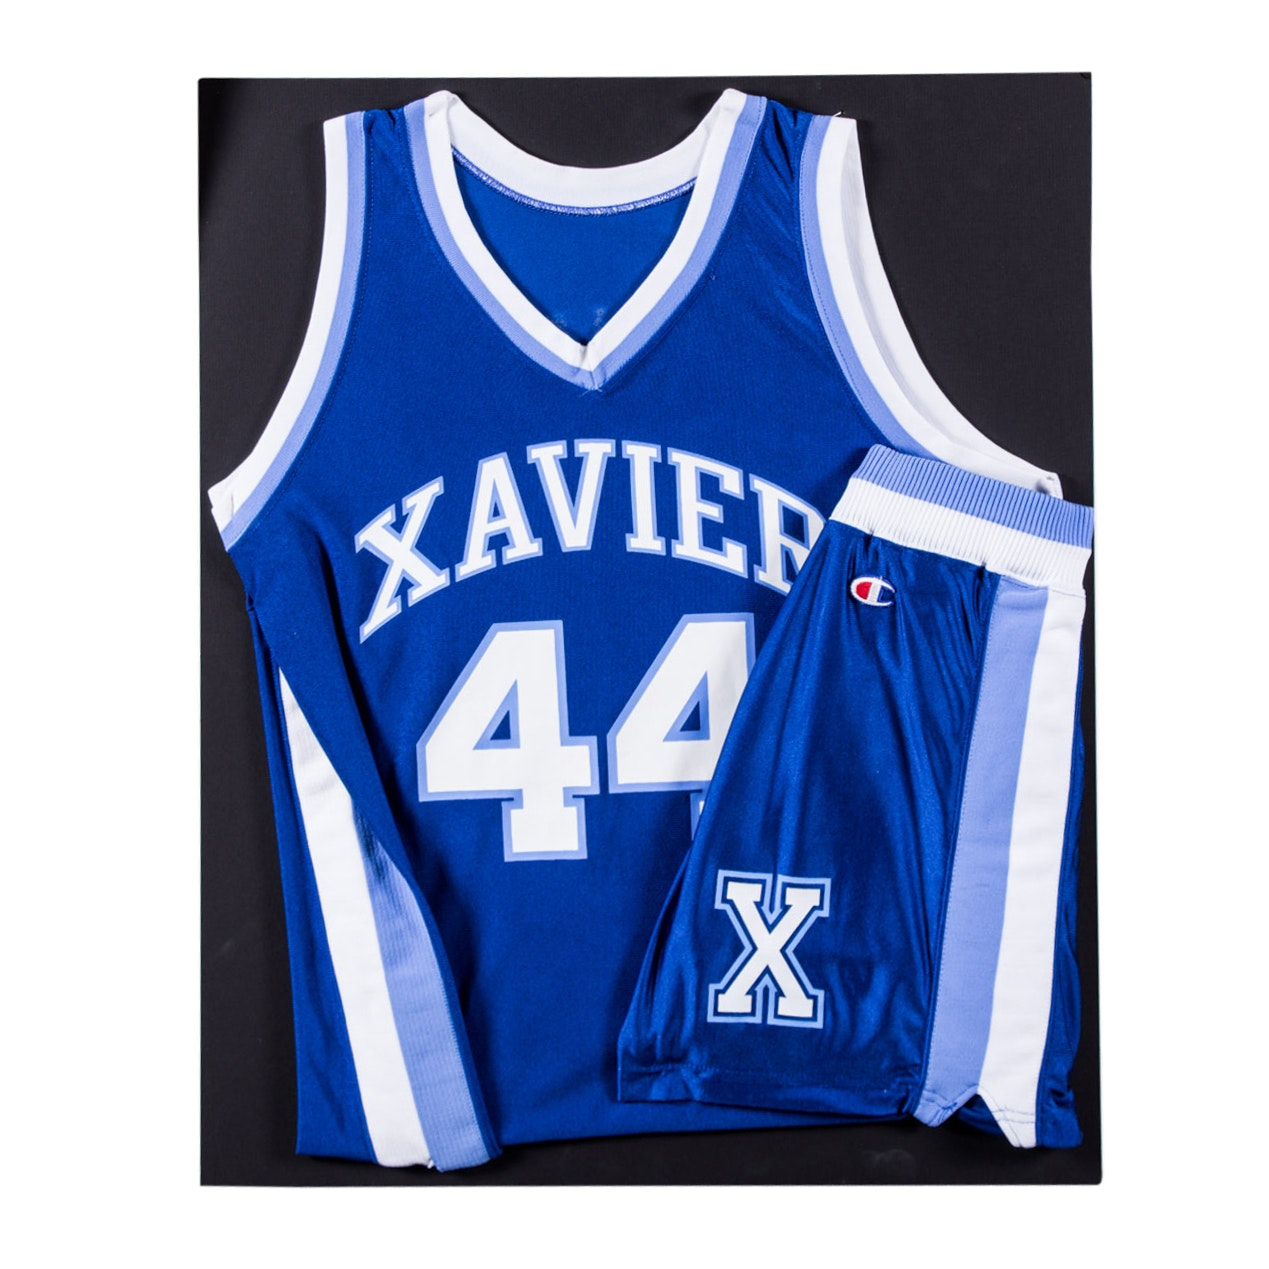 Xavier University Men's Basketball Uniform #44